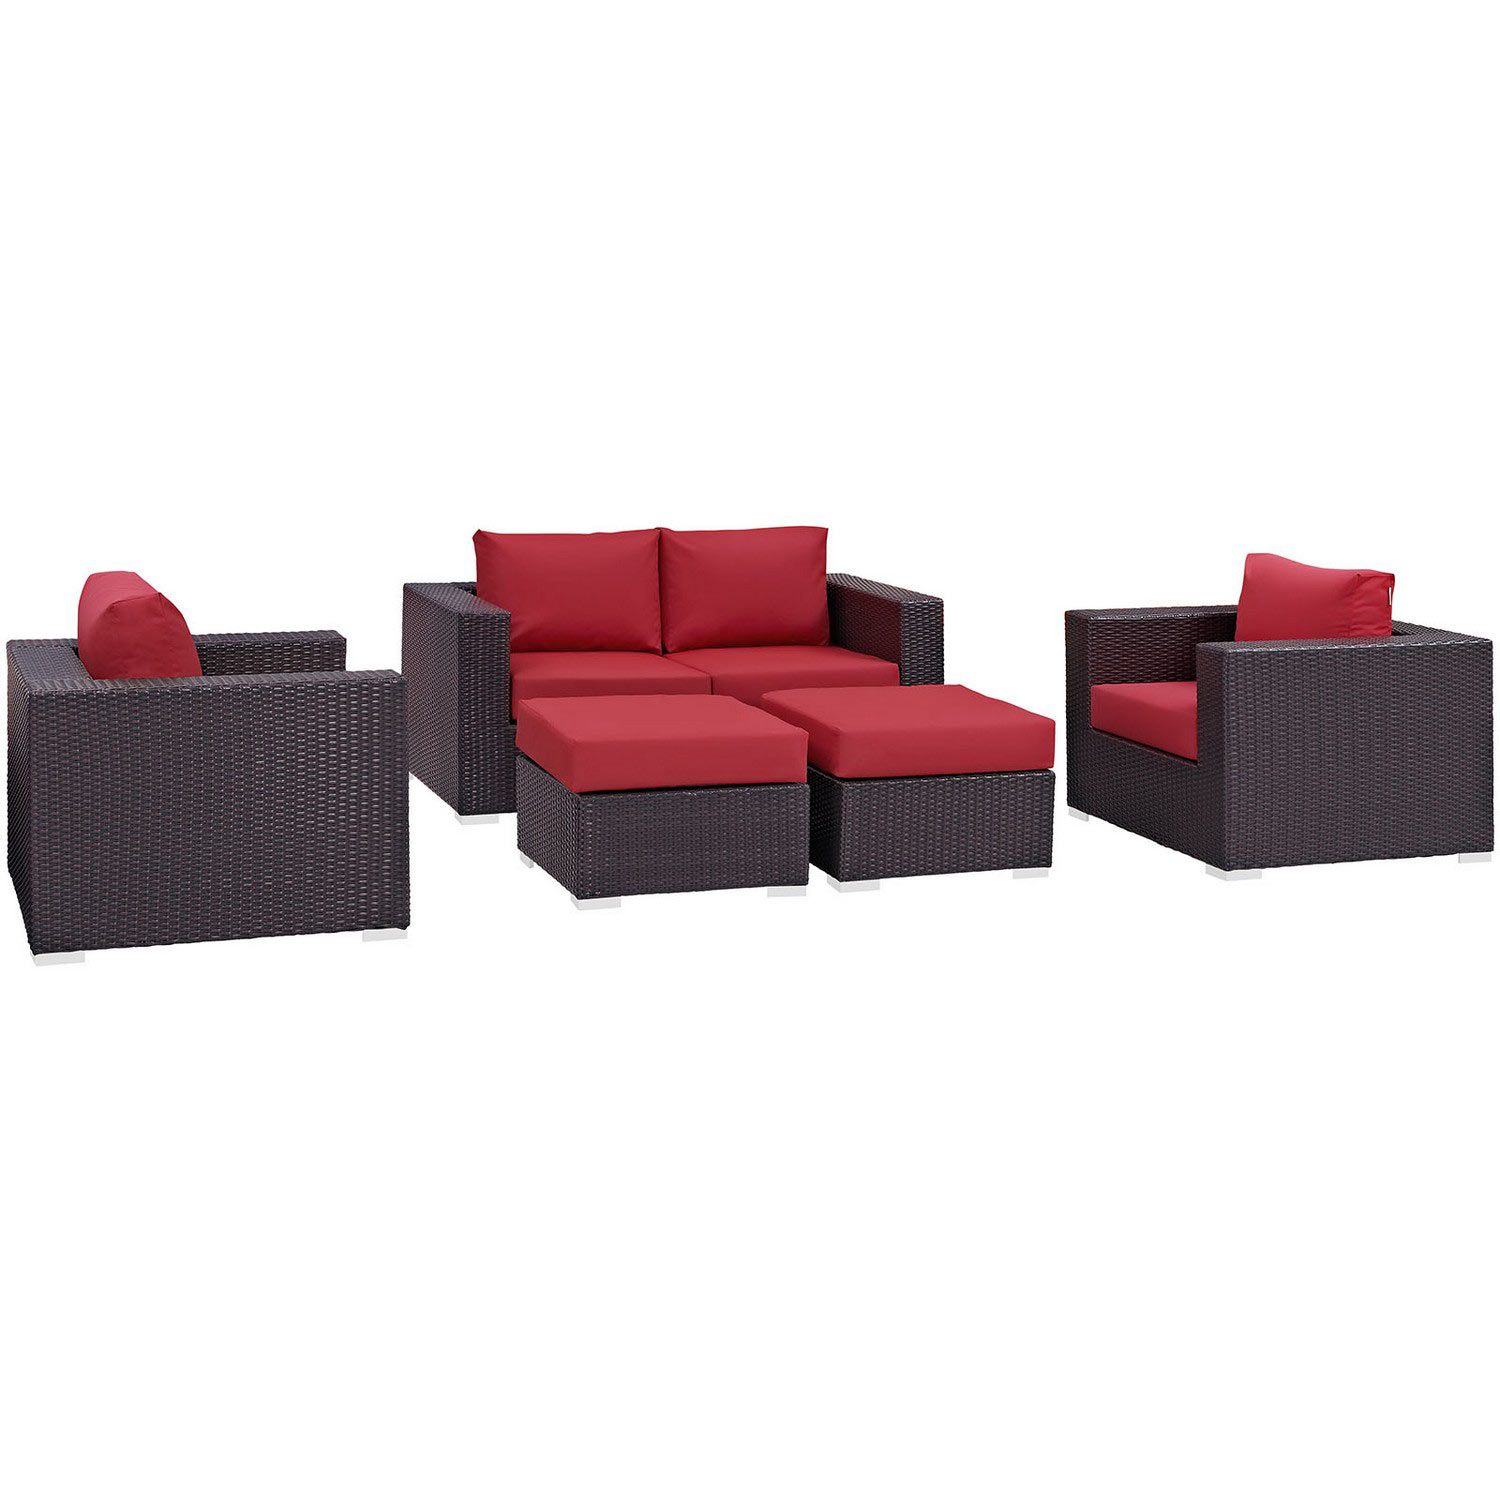 Modway Convene 5 Piece Outdoor Patio Sofa Set - Espresso Red